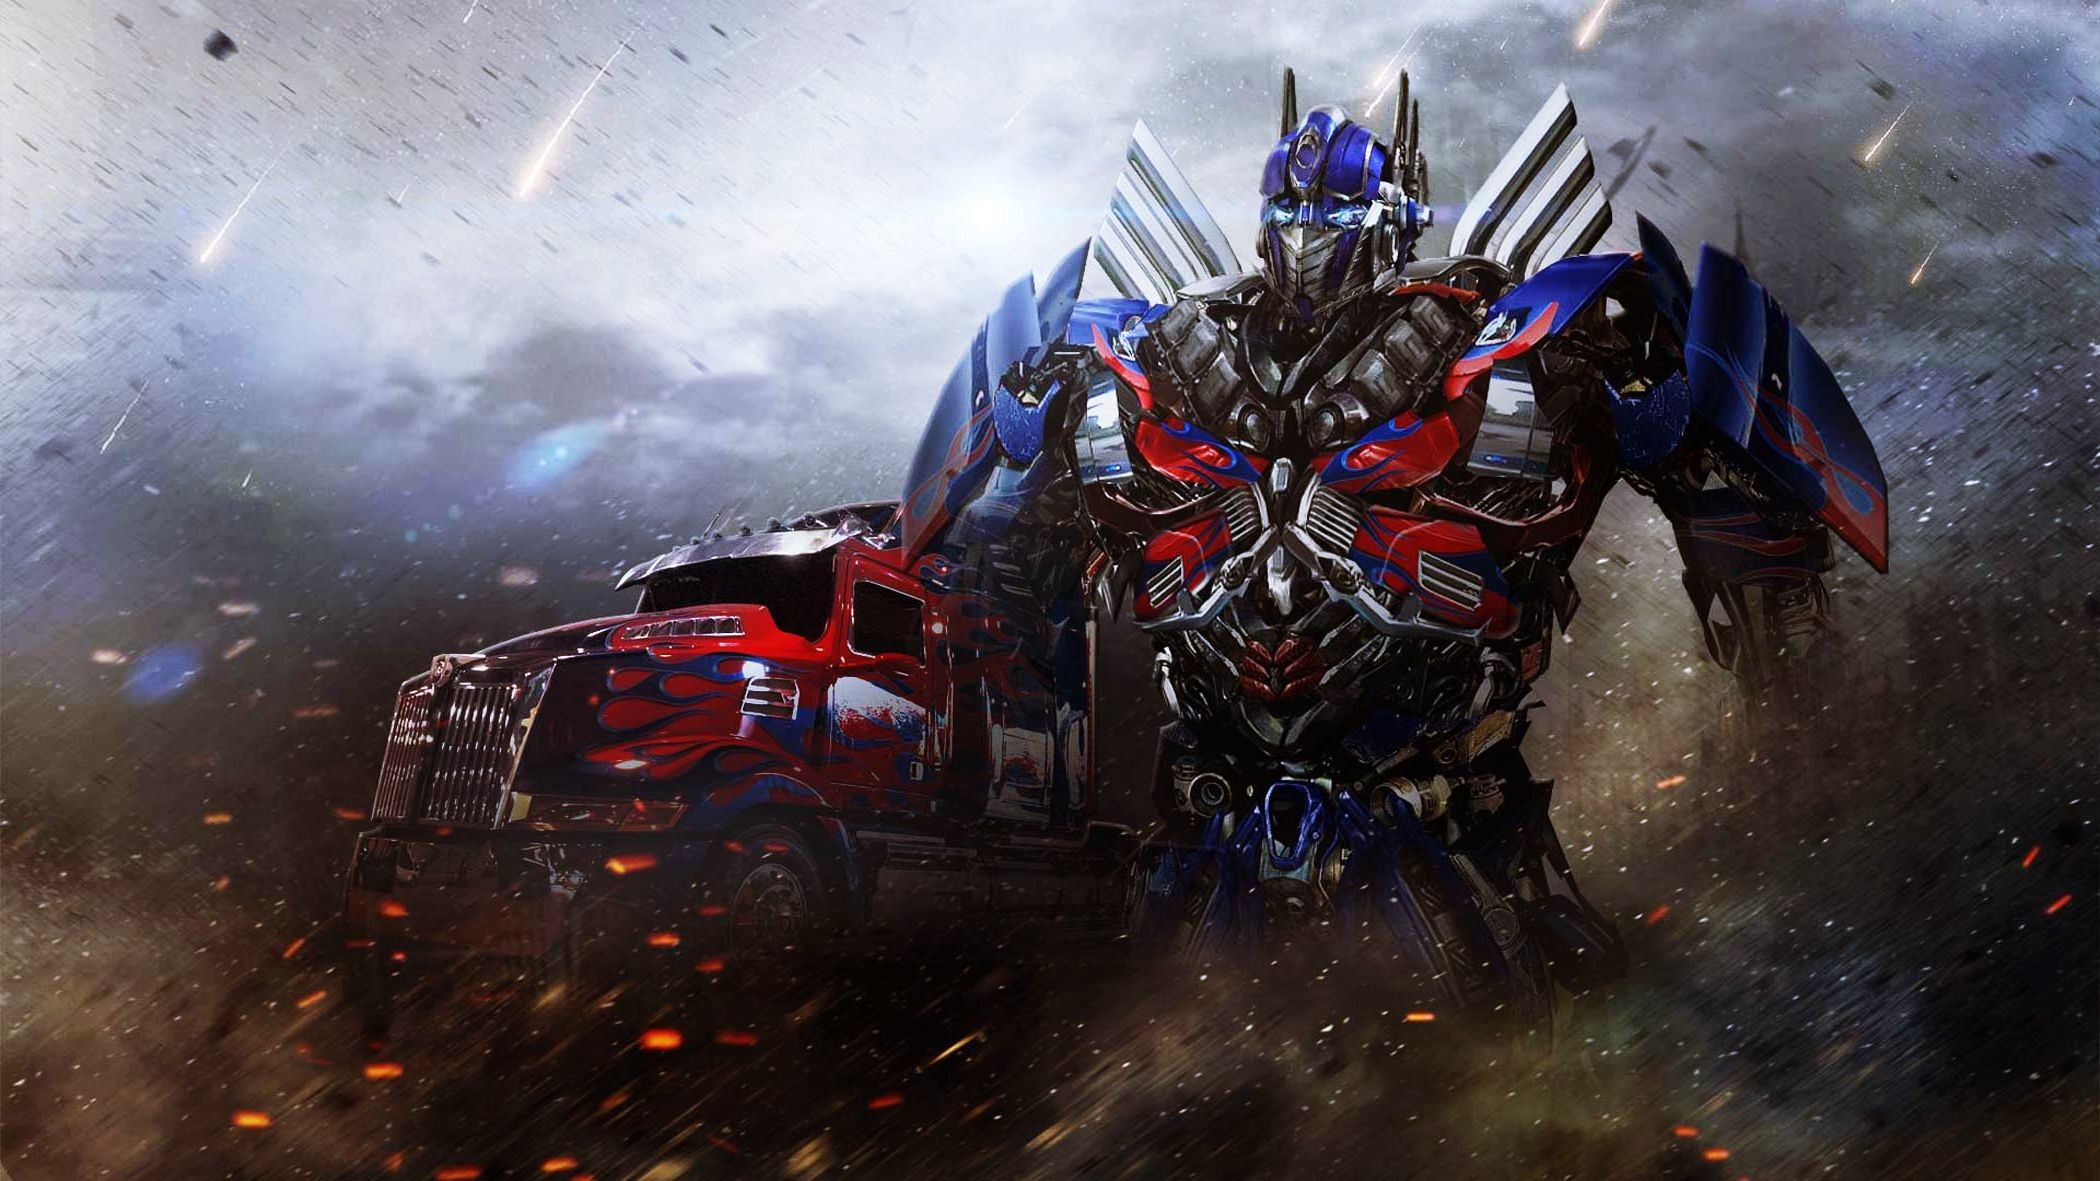 2100x1181 Optimus Prime images Optimus Prime HD wallpaper and background photos